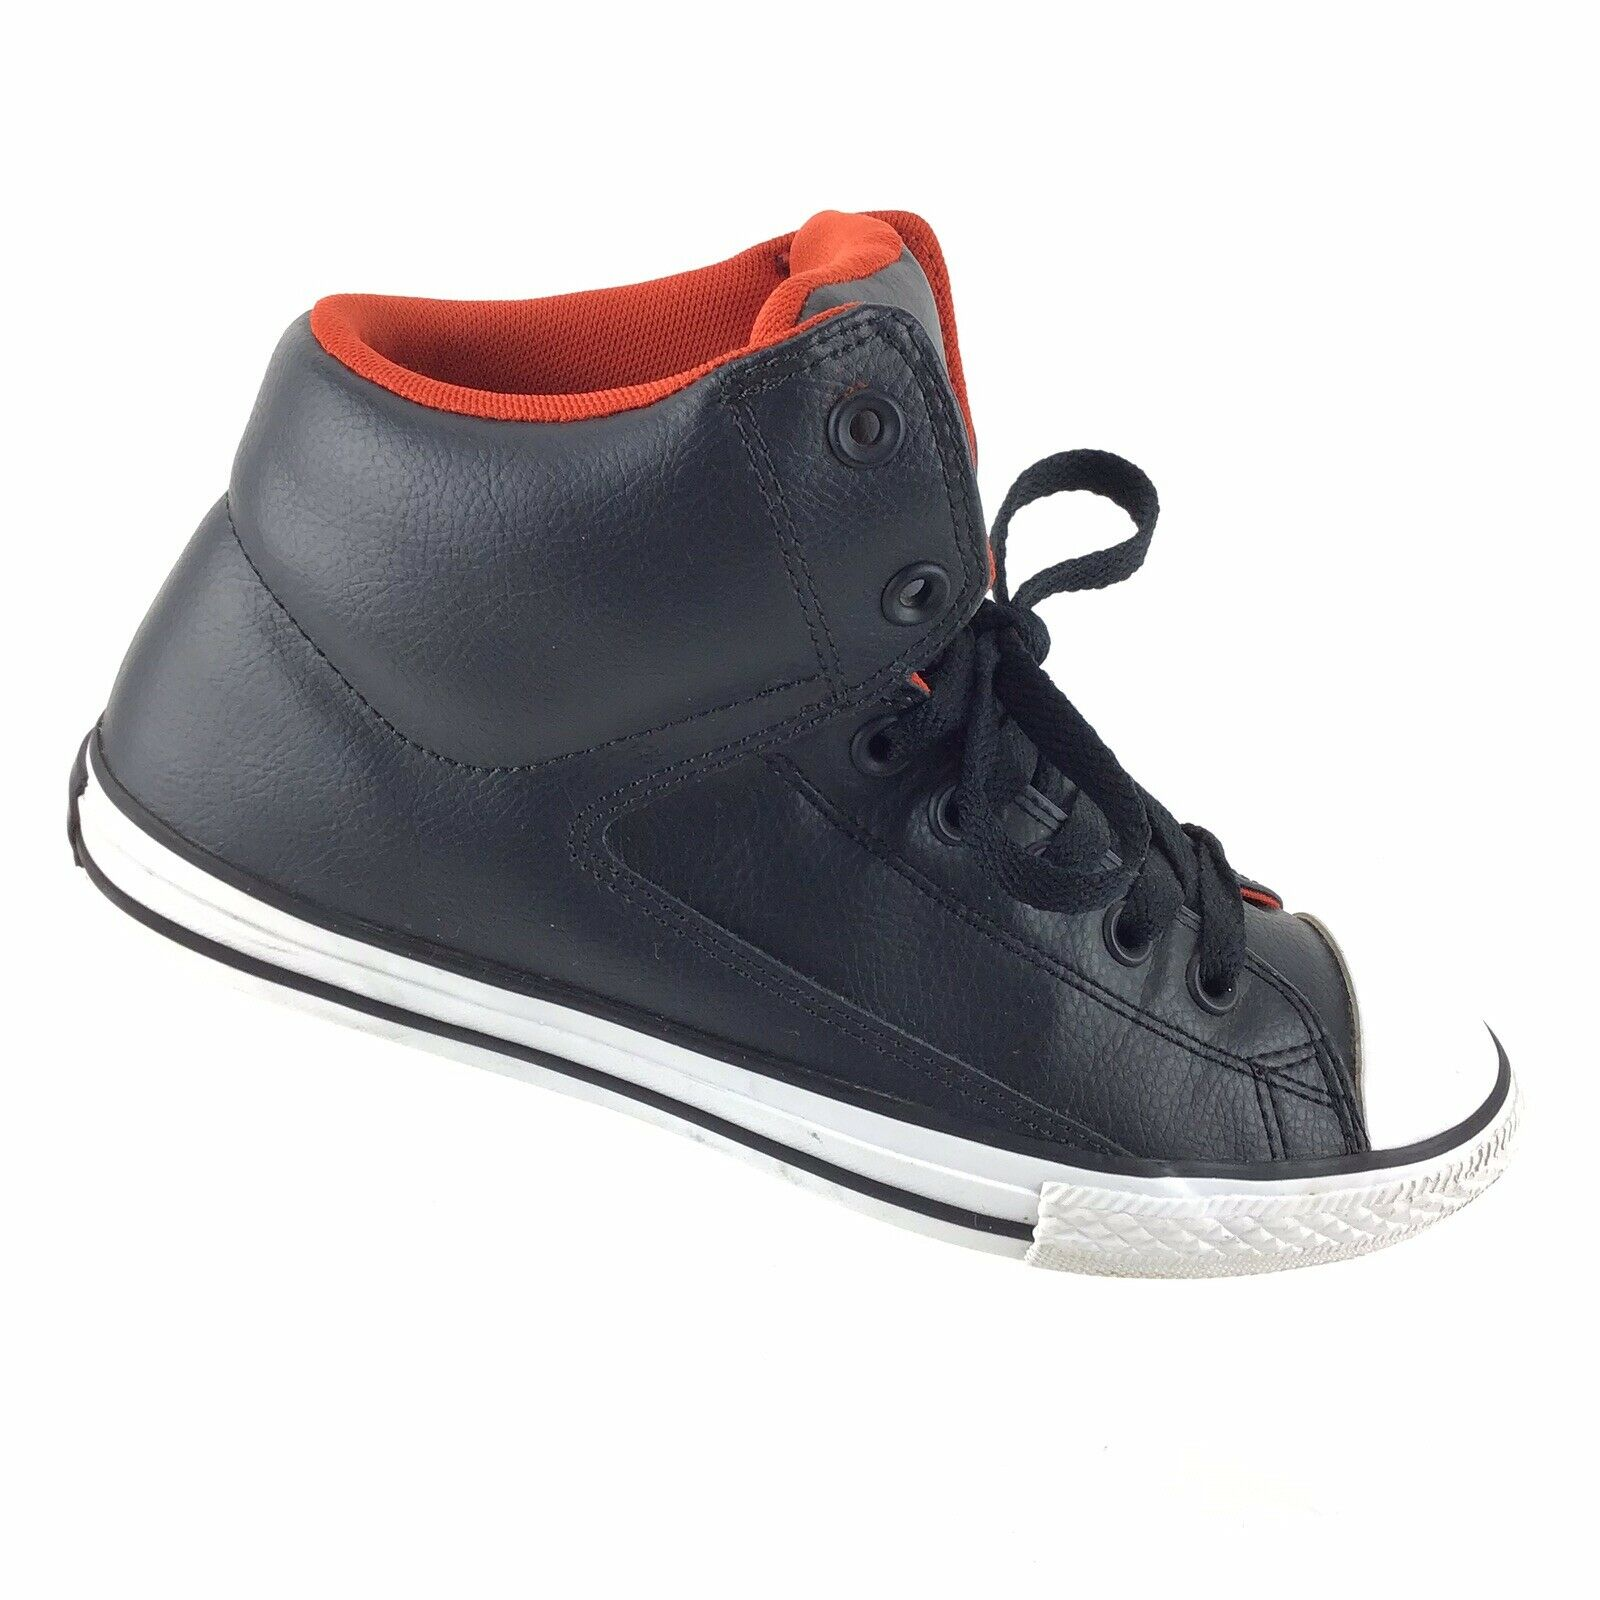 Converse All Star CT Street Mid-Top Black Leather Athletic Sneakers Mens 6 R5S5